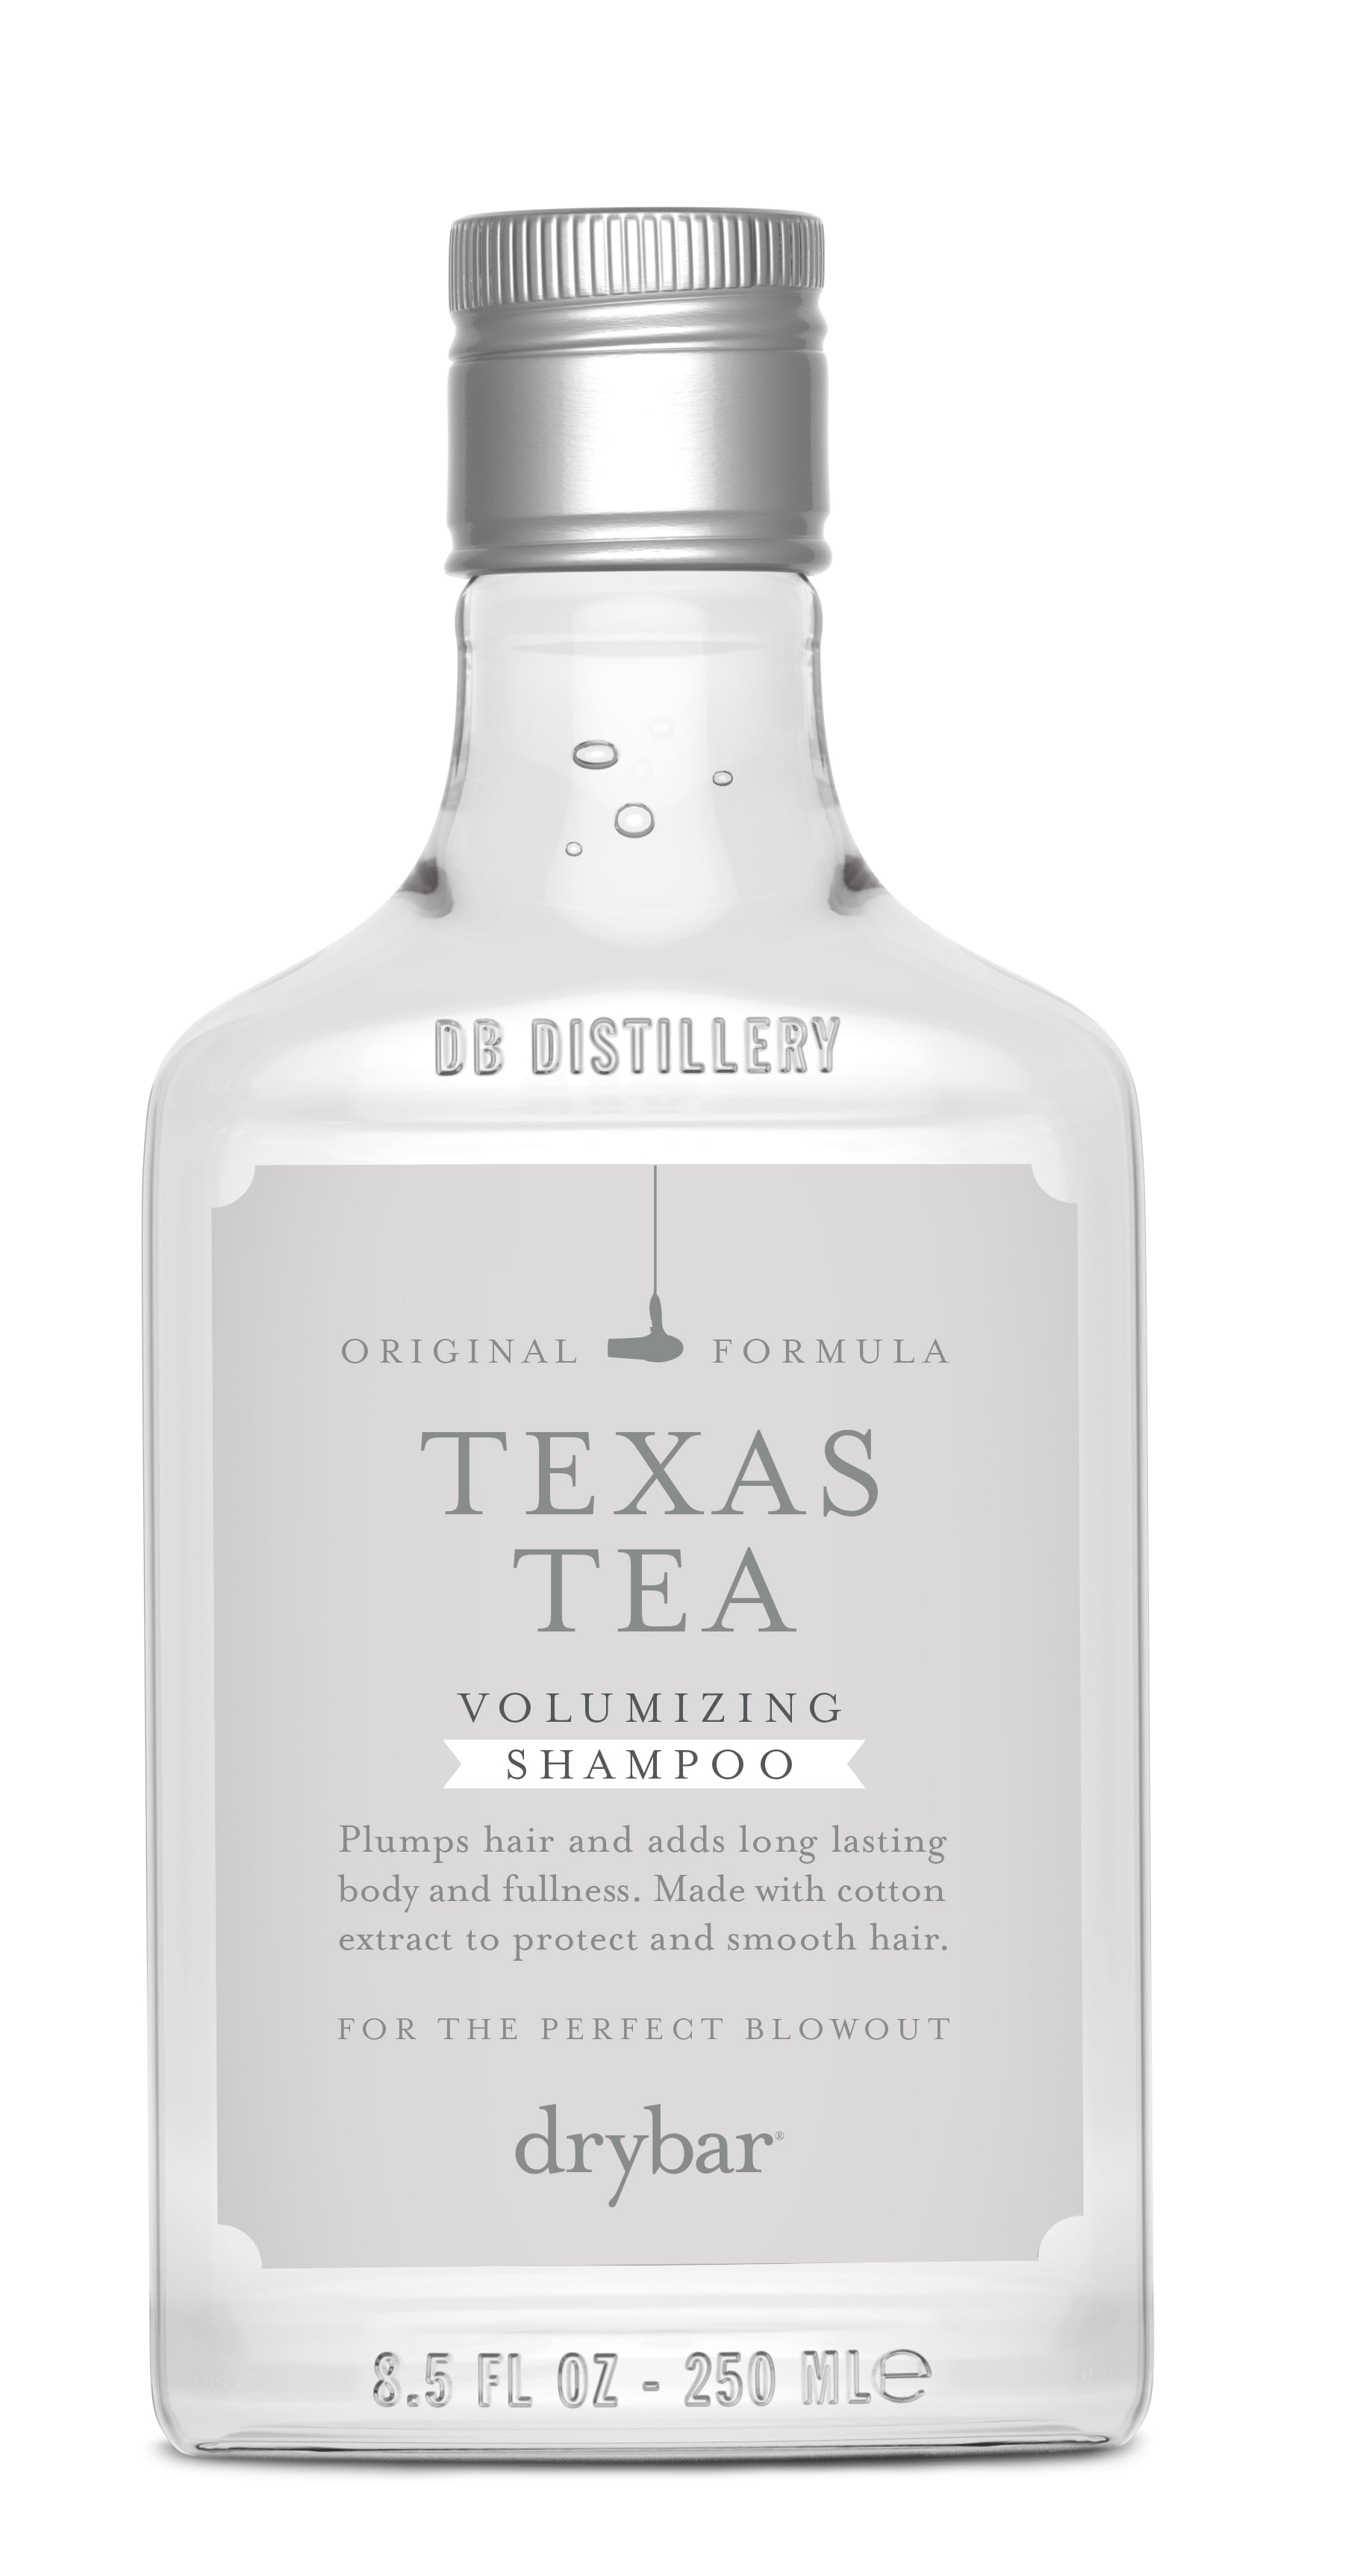 Drybar Texas Tea Volumizing Shampoo